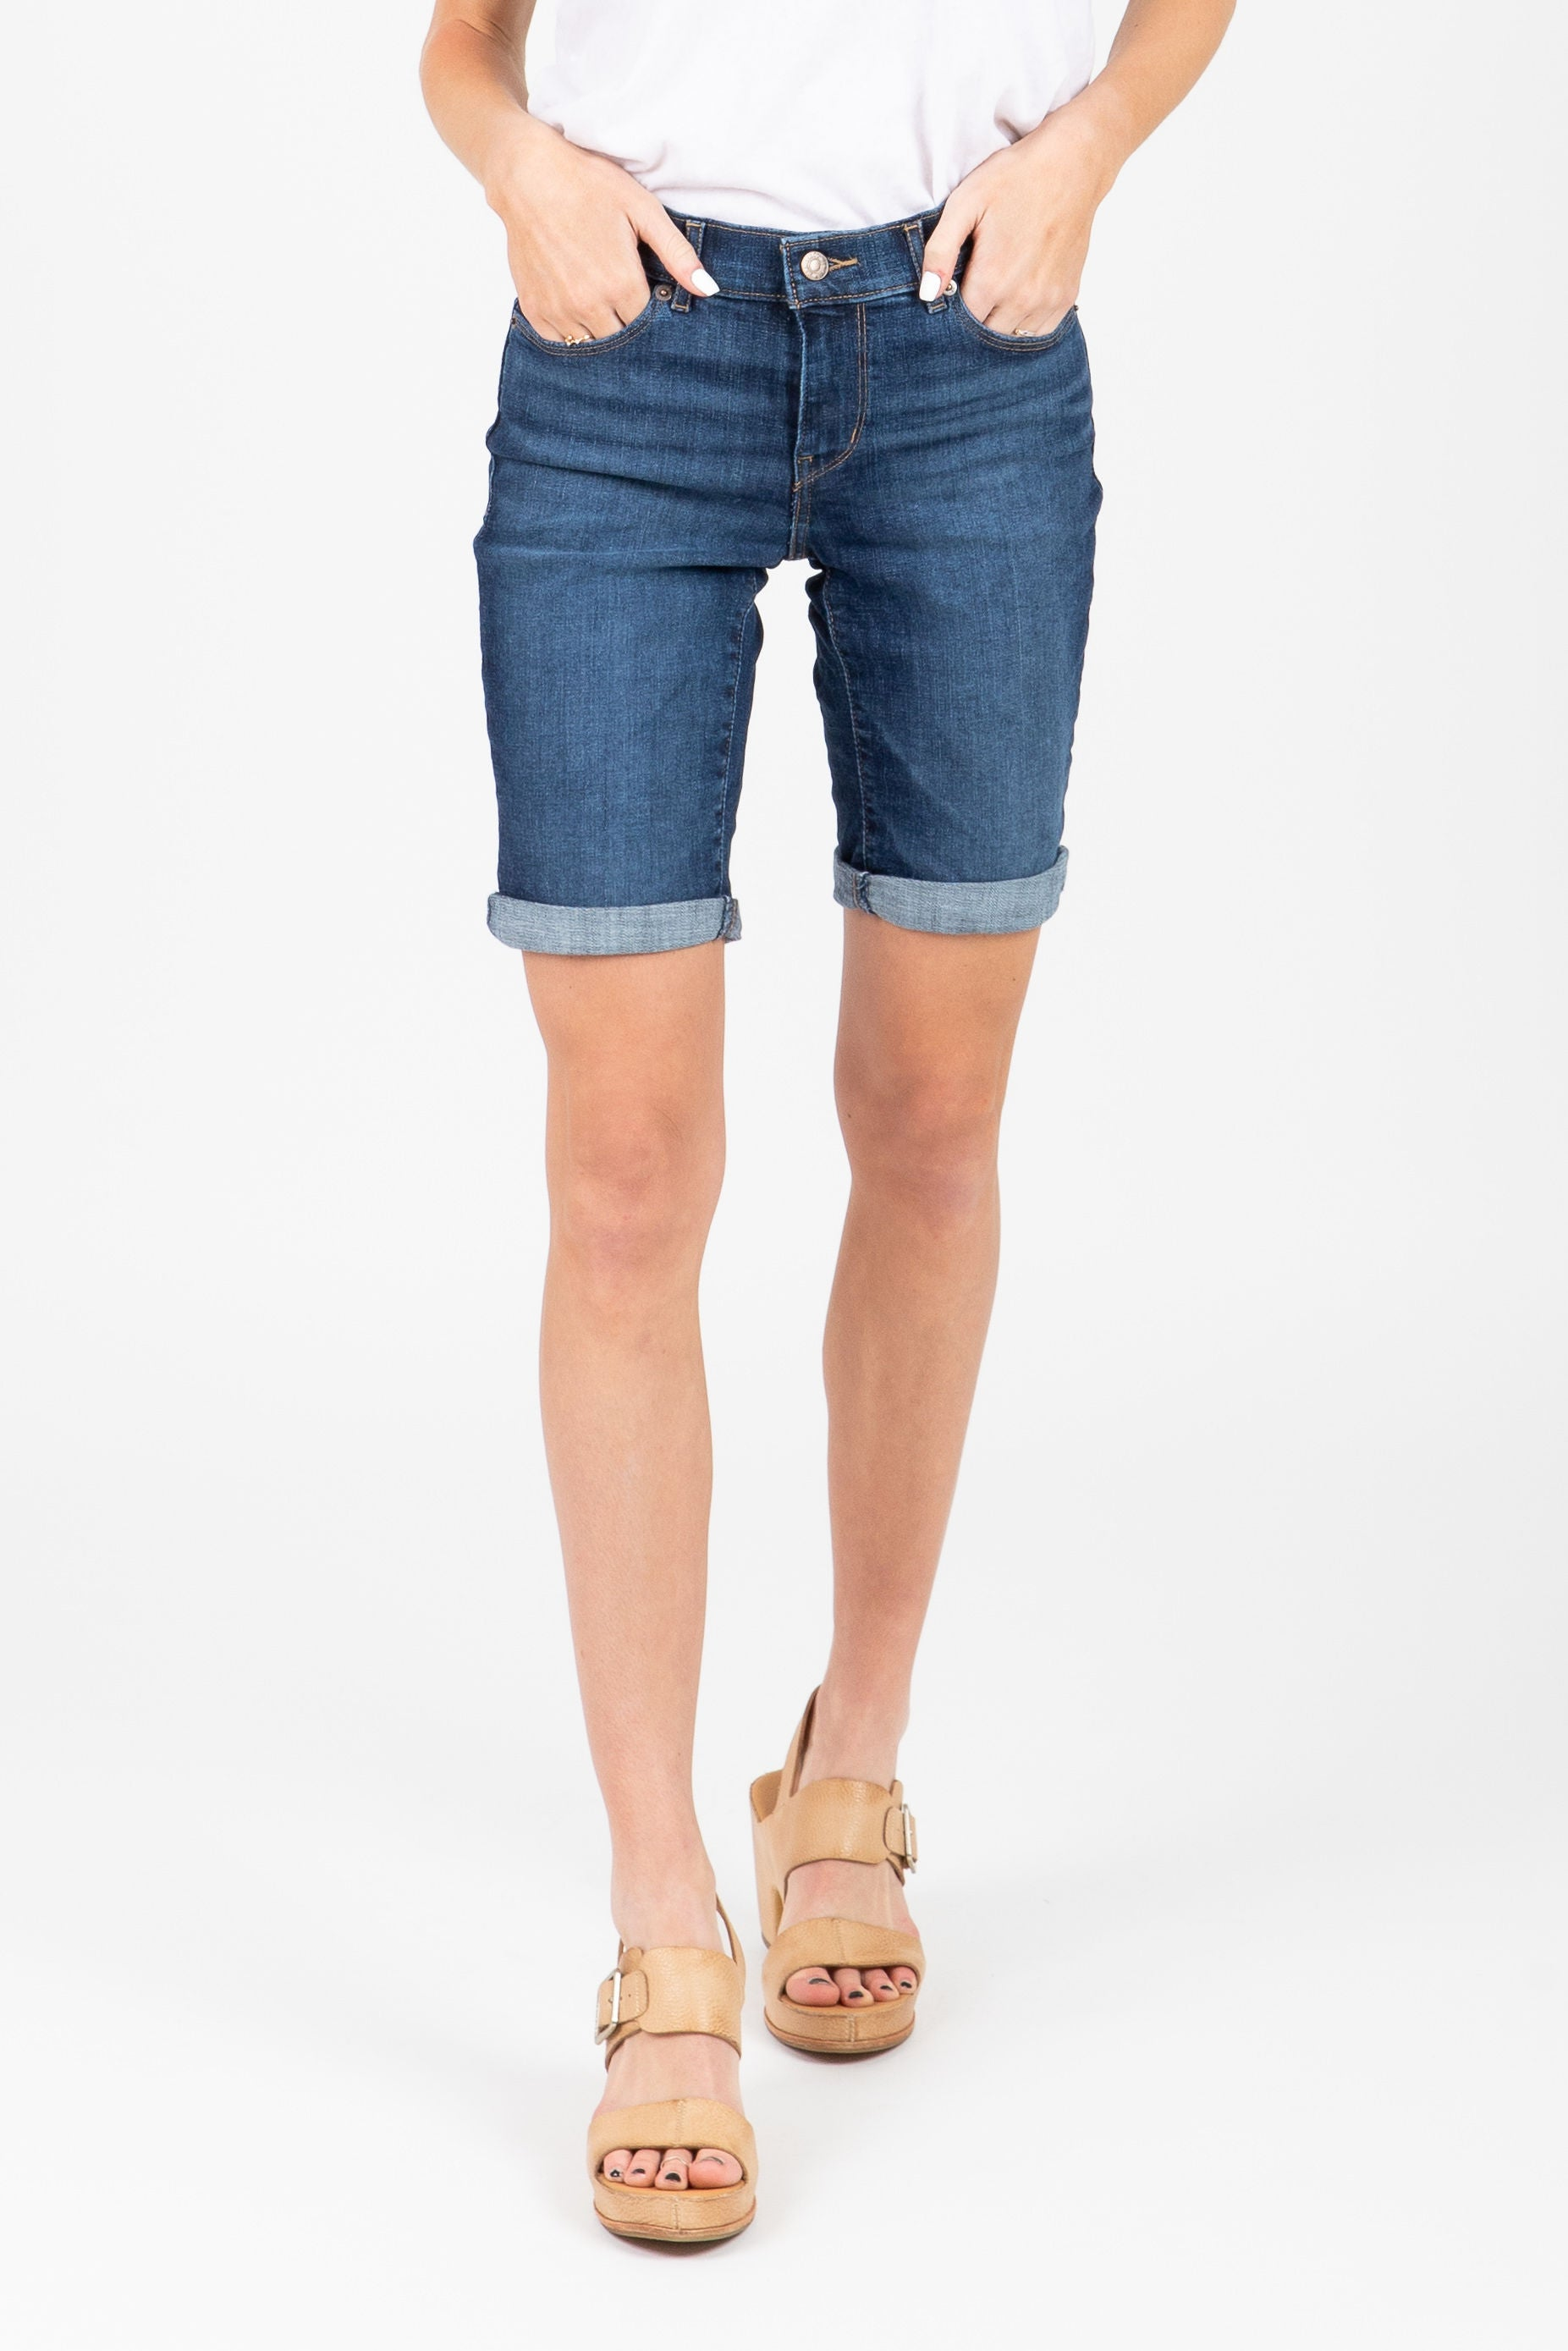 bea6c3a7 Levi's: Bermuda Shorts in Dark Indigo Moon – Piper & Scoot